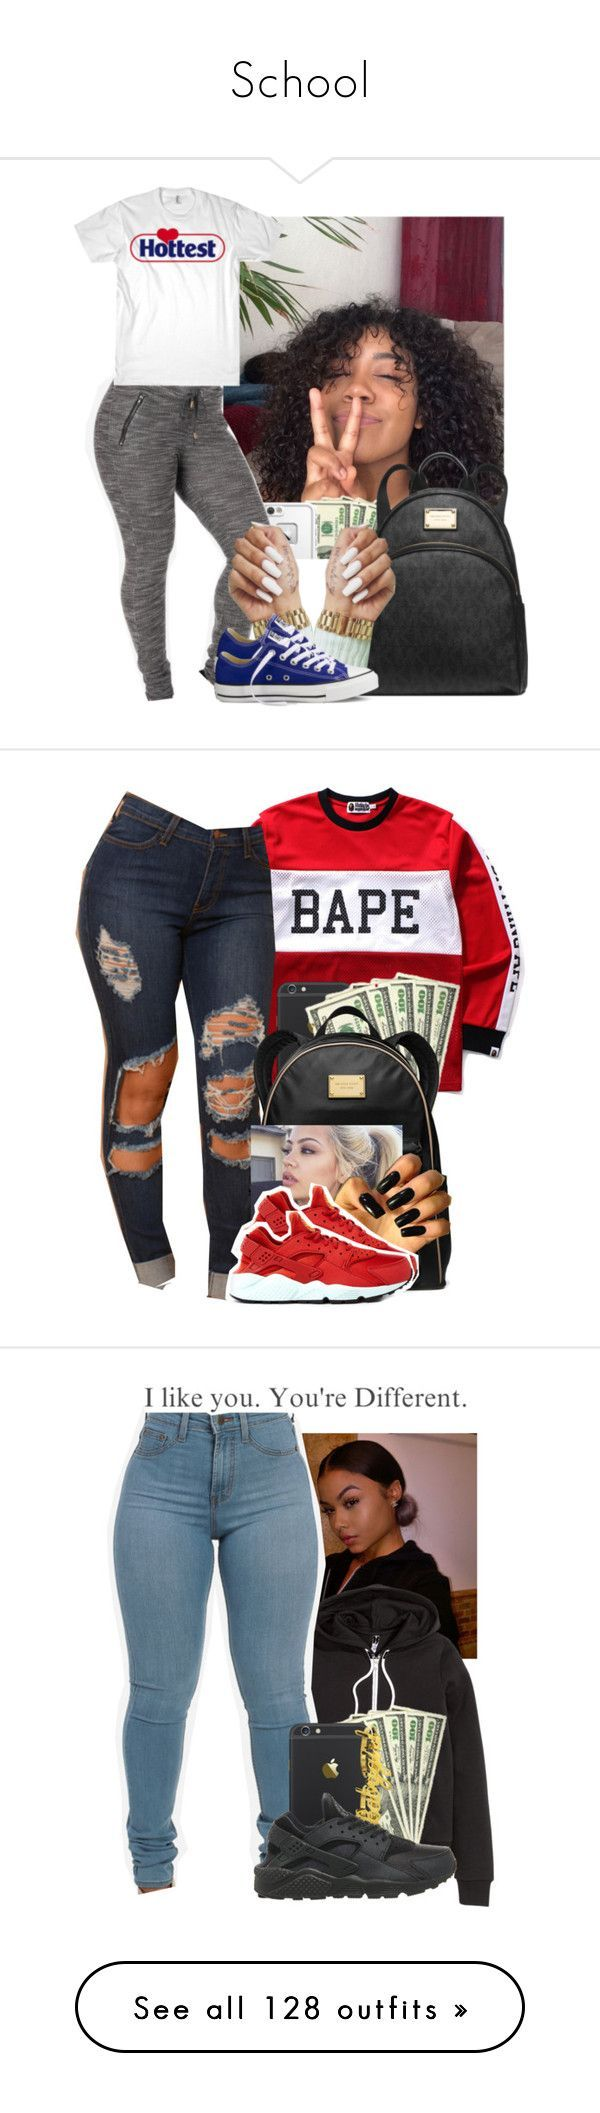 School by heavensincere ❤ liked on Polyvore featuring LifeProof, Michael Kors, Converse, A BATHING APE, MICHAEL Michael Kors, NIKE, HM, Joyrich, MCM and Moschino